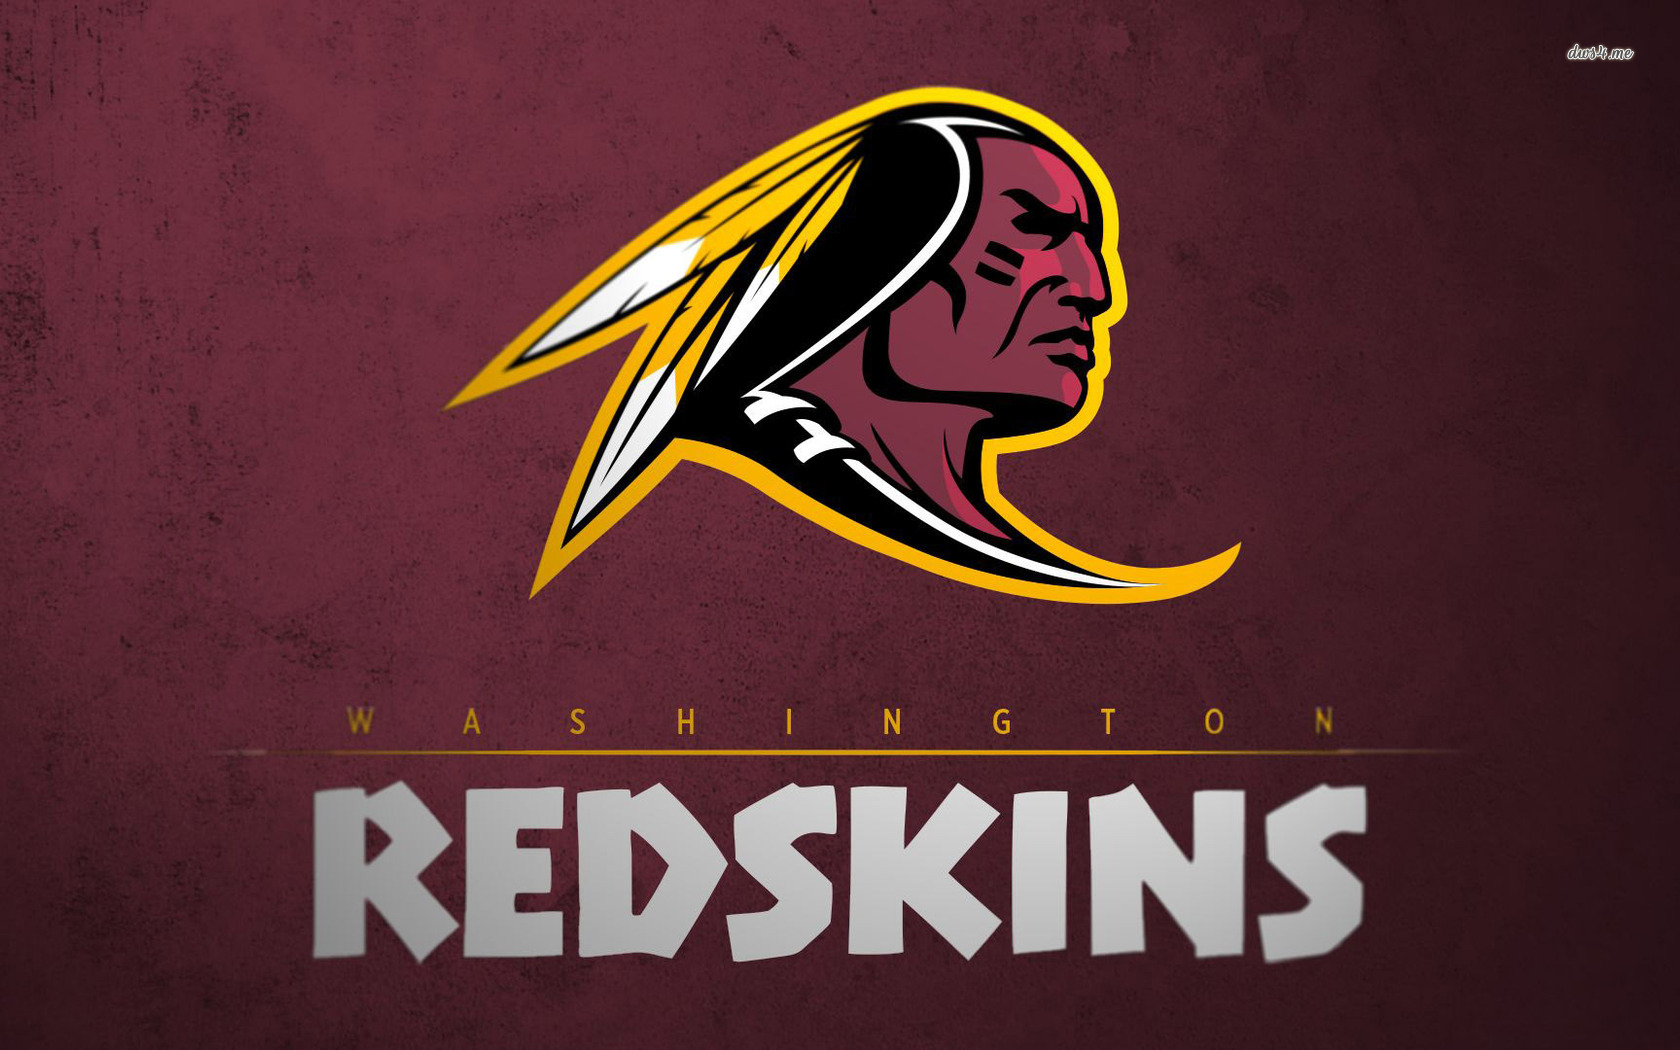 Washington Redskins wallpaper 1280x800 Washington Redskins wallpaper 1680x1050